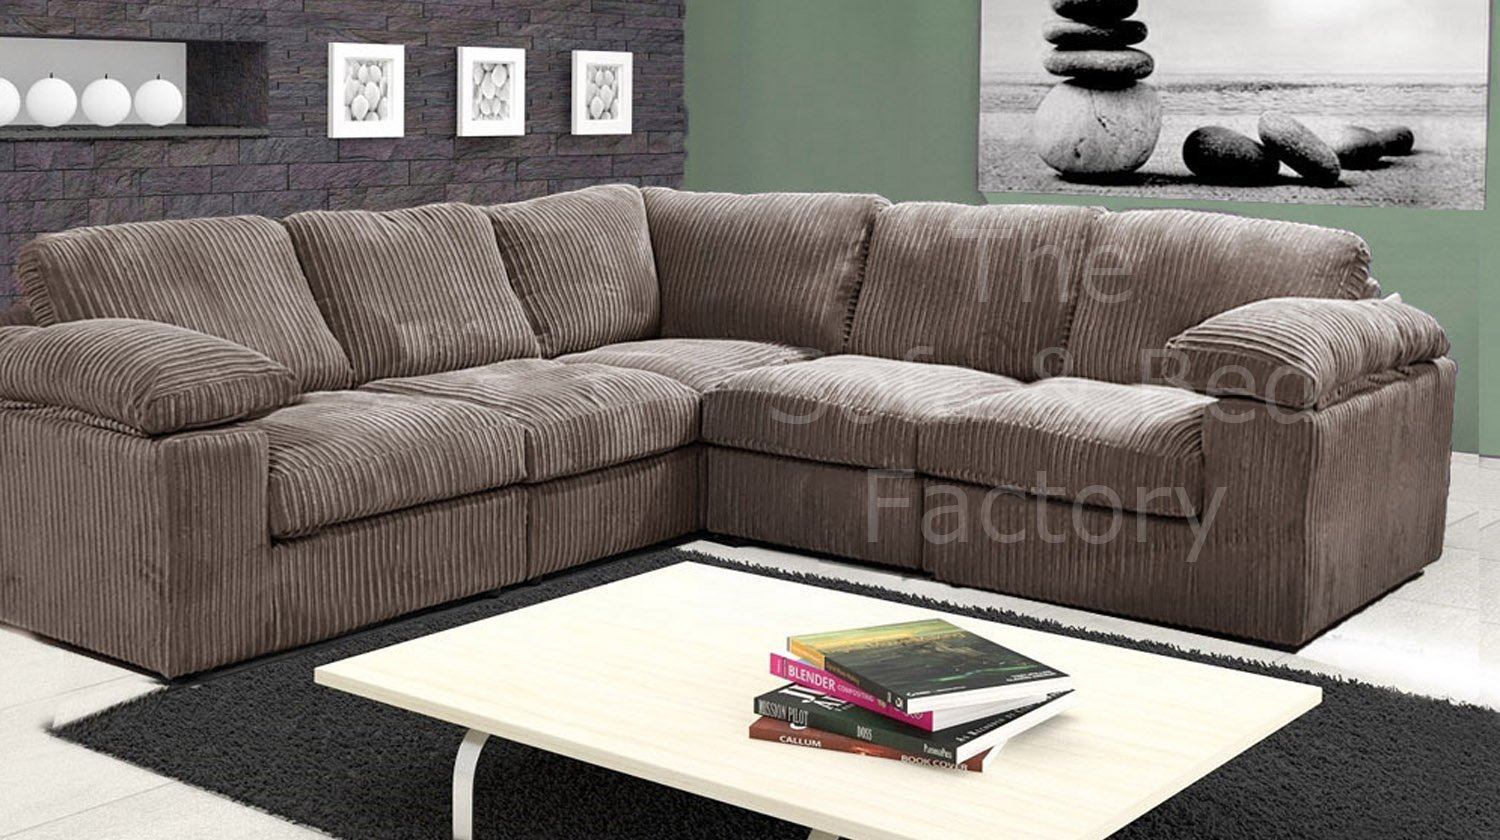 Details about New Ruxley Large Fabric 5 Seater Corner Sofa - 2 Corner 2 -  Beige / Coffee Cheap